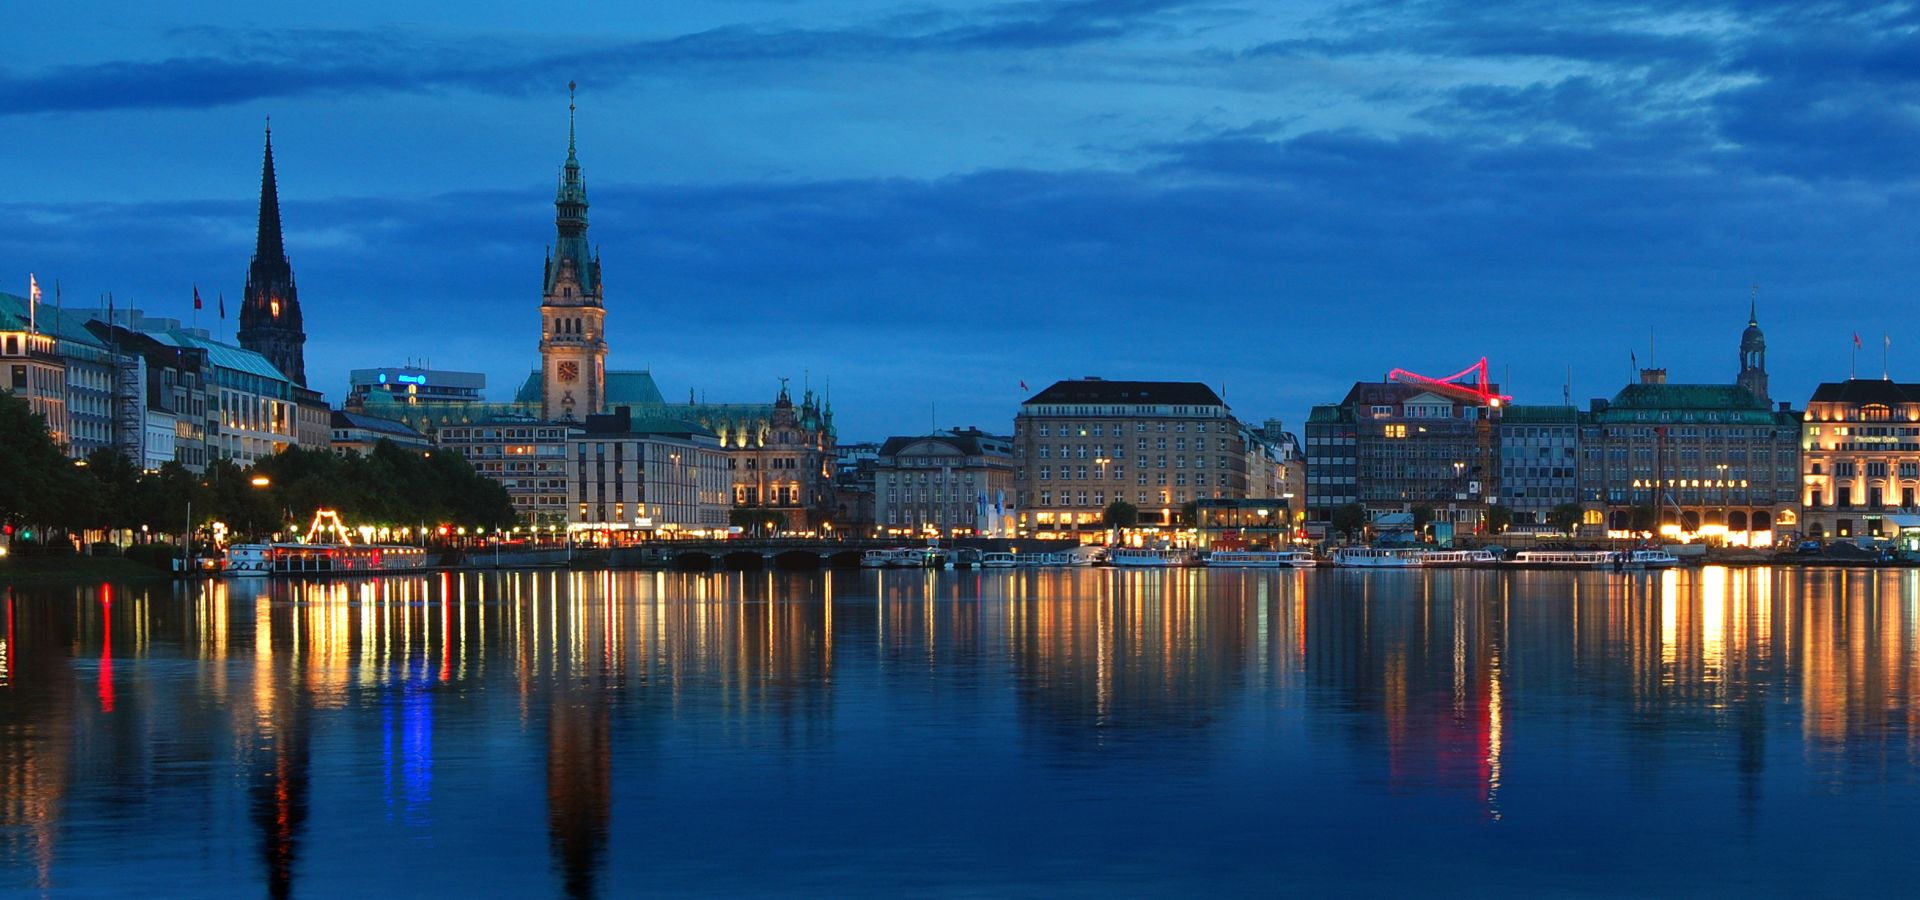 panorama of hamburg from the Alster river at night